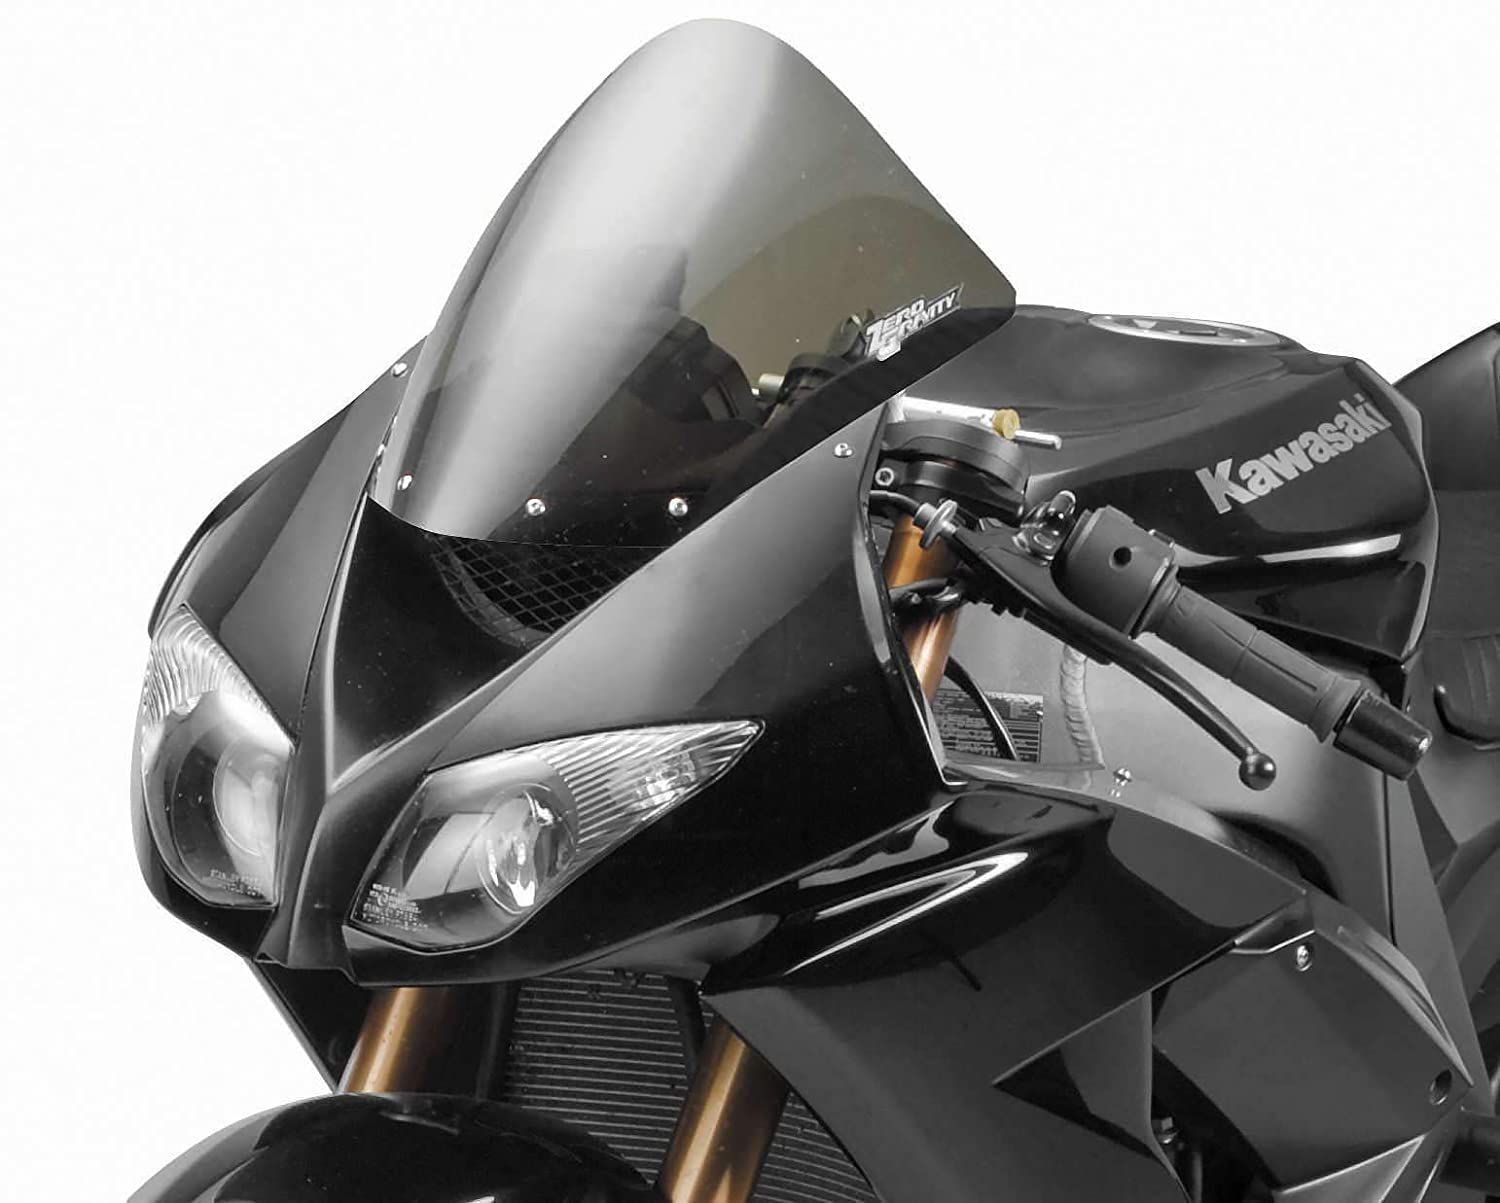 Zero Gravity Corsa Windscreen for 2007-2008 Kawasaki ZX-6R, 2008-2010 ZX-10R